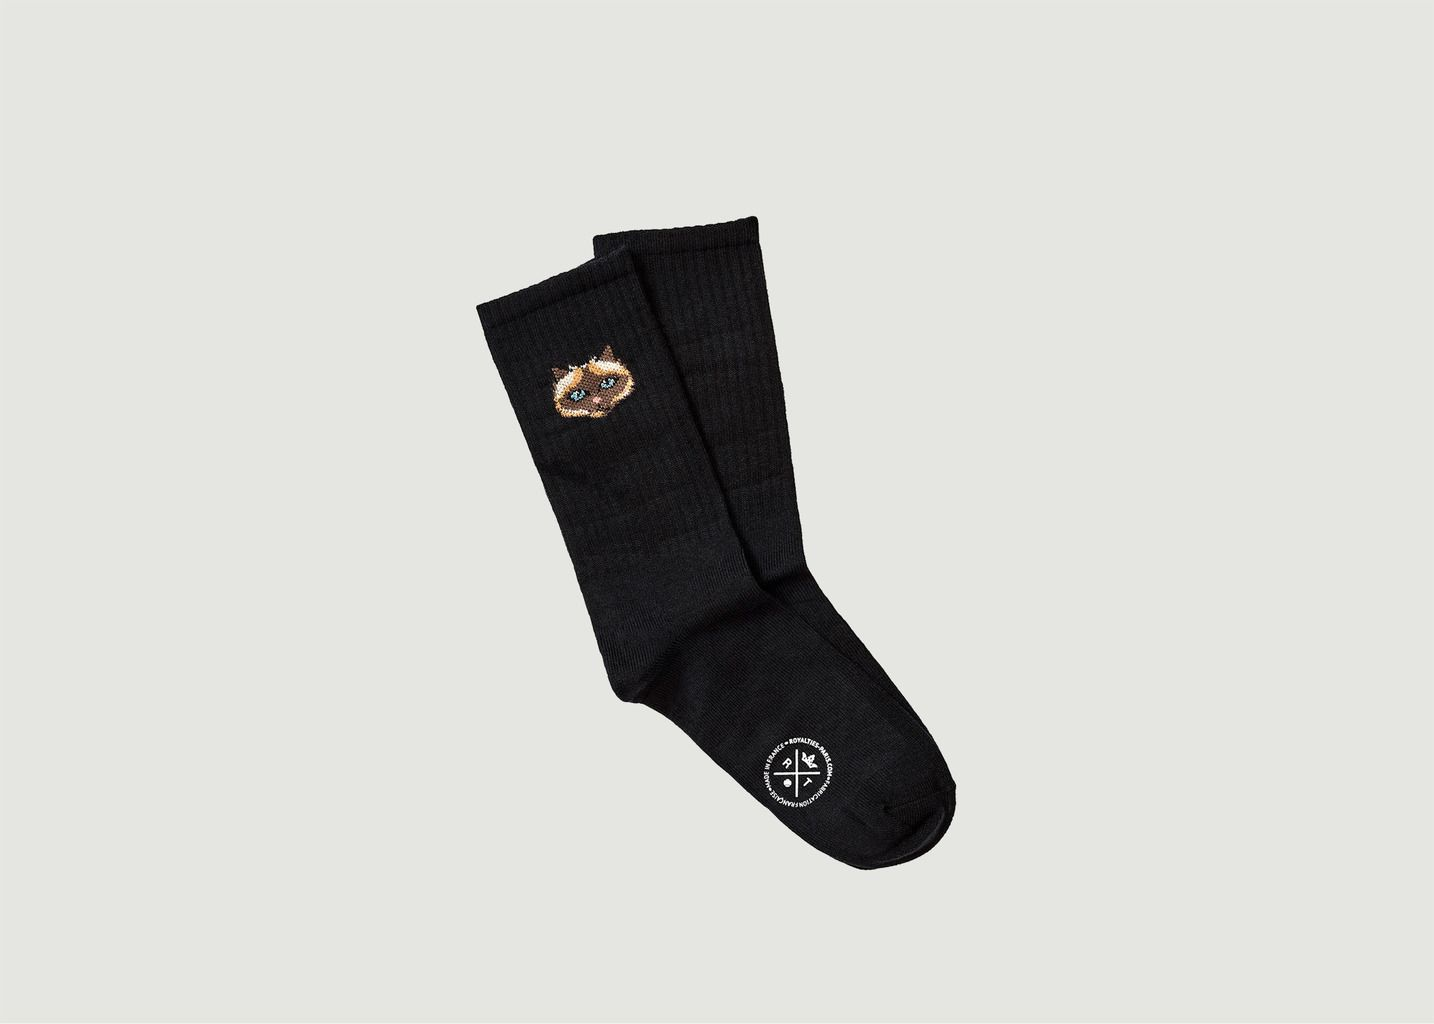 Chaussettes Pussy - Royalties